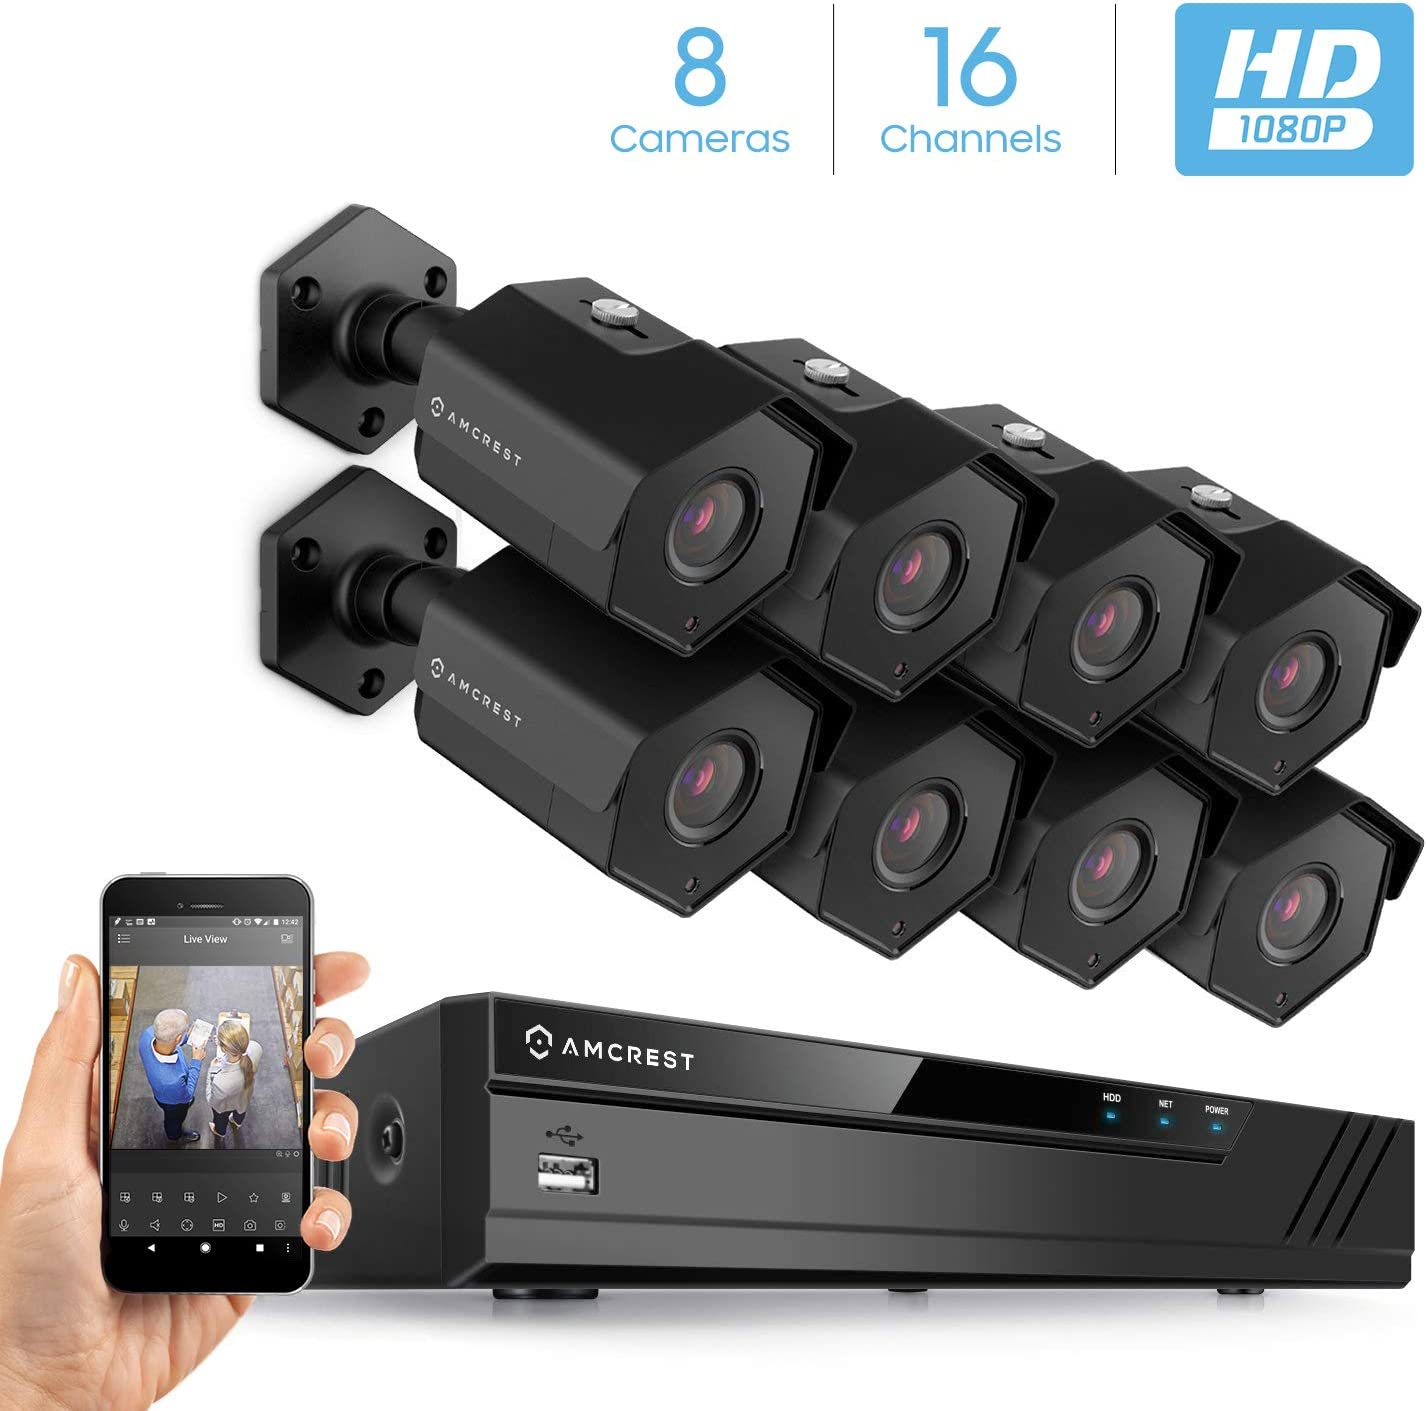 Tonton 1080P 16 Channel Security Camera System,16CH 5-in-1 Hybrid DVR Recorder with 12PCS 2.0Mp Outdoor Bullet Cameras,Easy Remote Access,Smart Motion Detection,Email App Alerts with Snapshot NO HDD